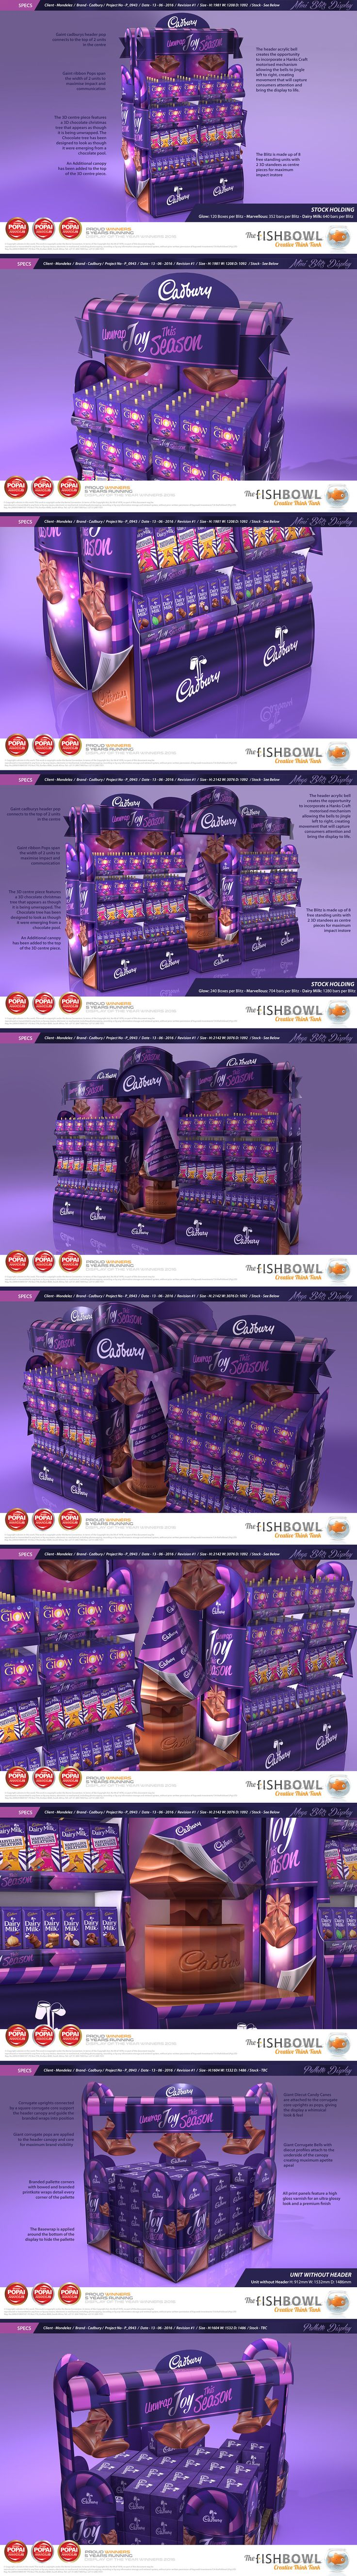 Unwrap Joy - Cadburys Christmas on Behance